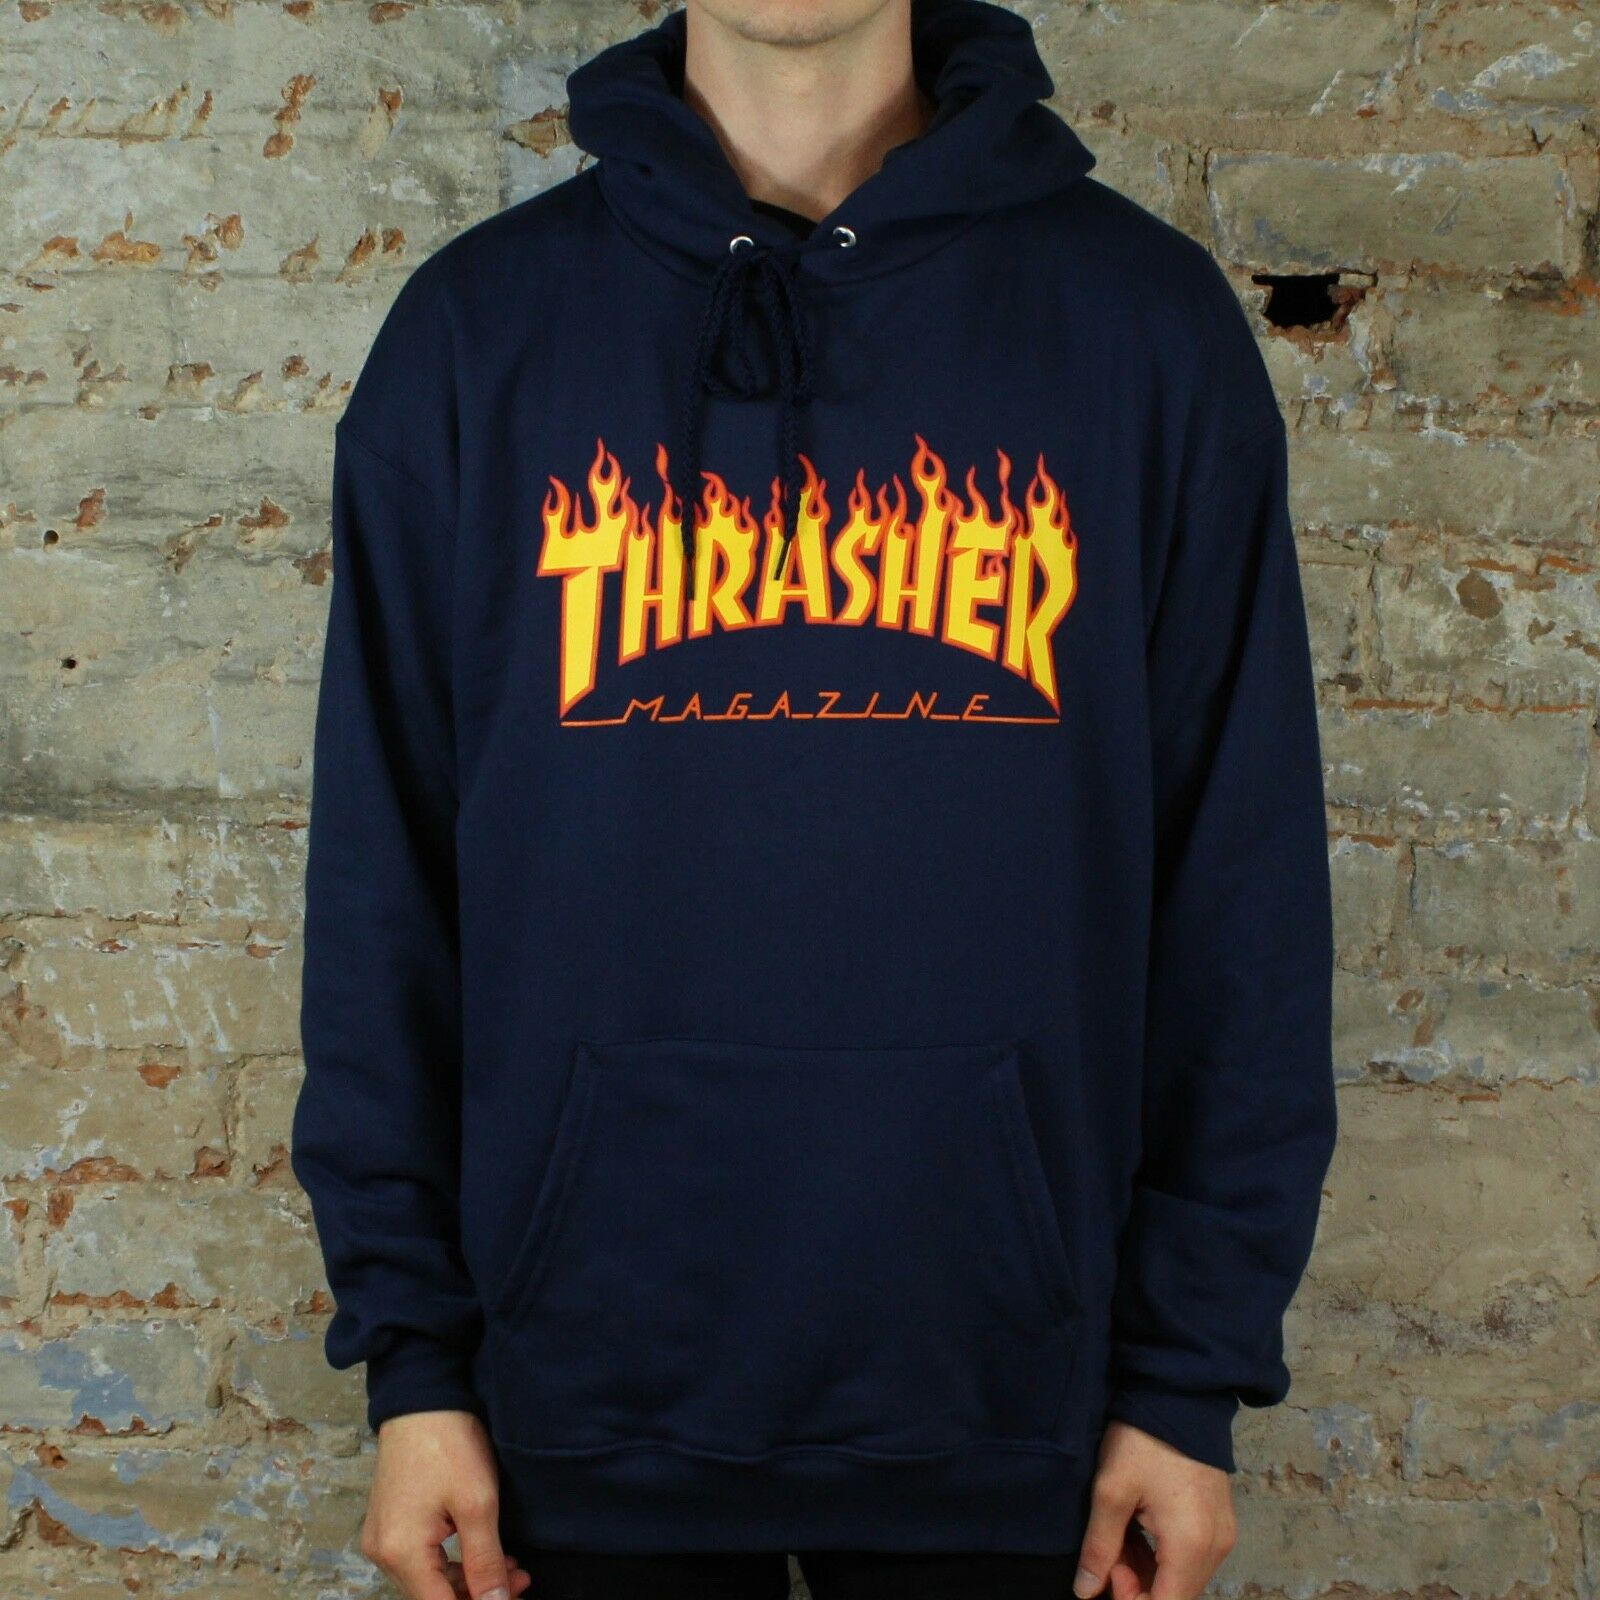 bda3b947d7fa Details about Thrasher Flame Logo Pullover Hooded Sweatshirt – Navy in size  S